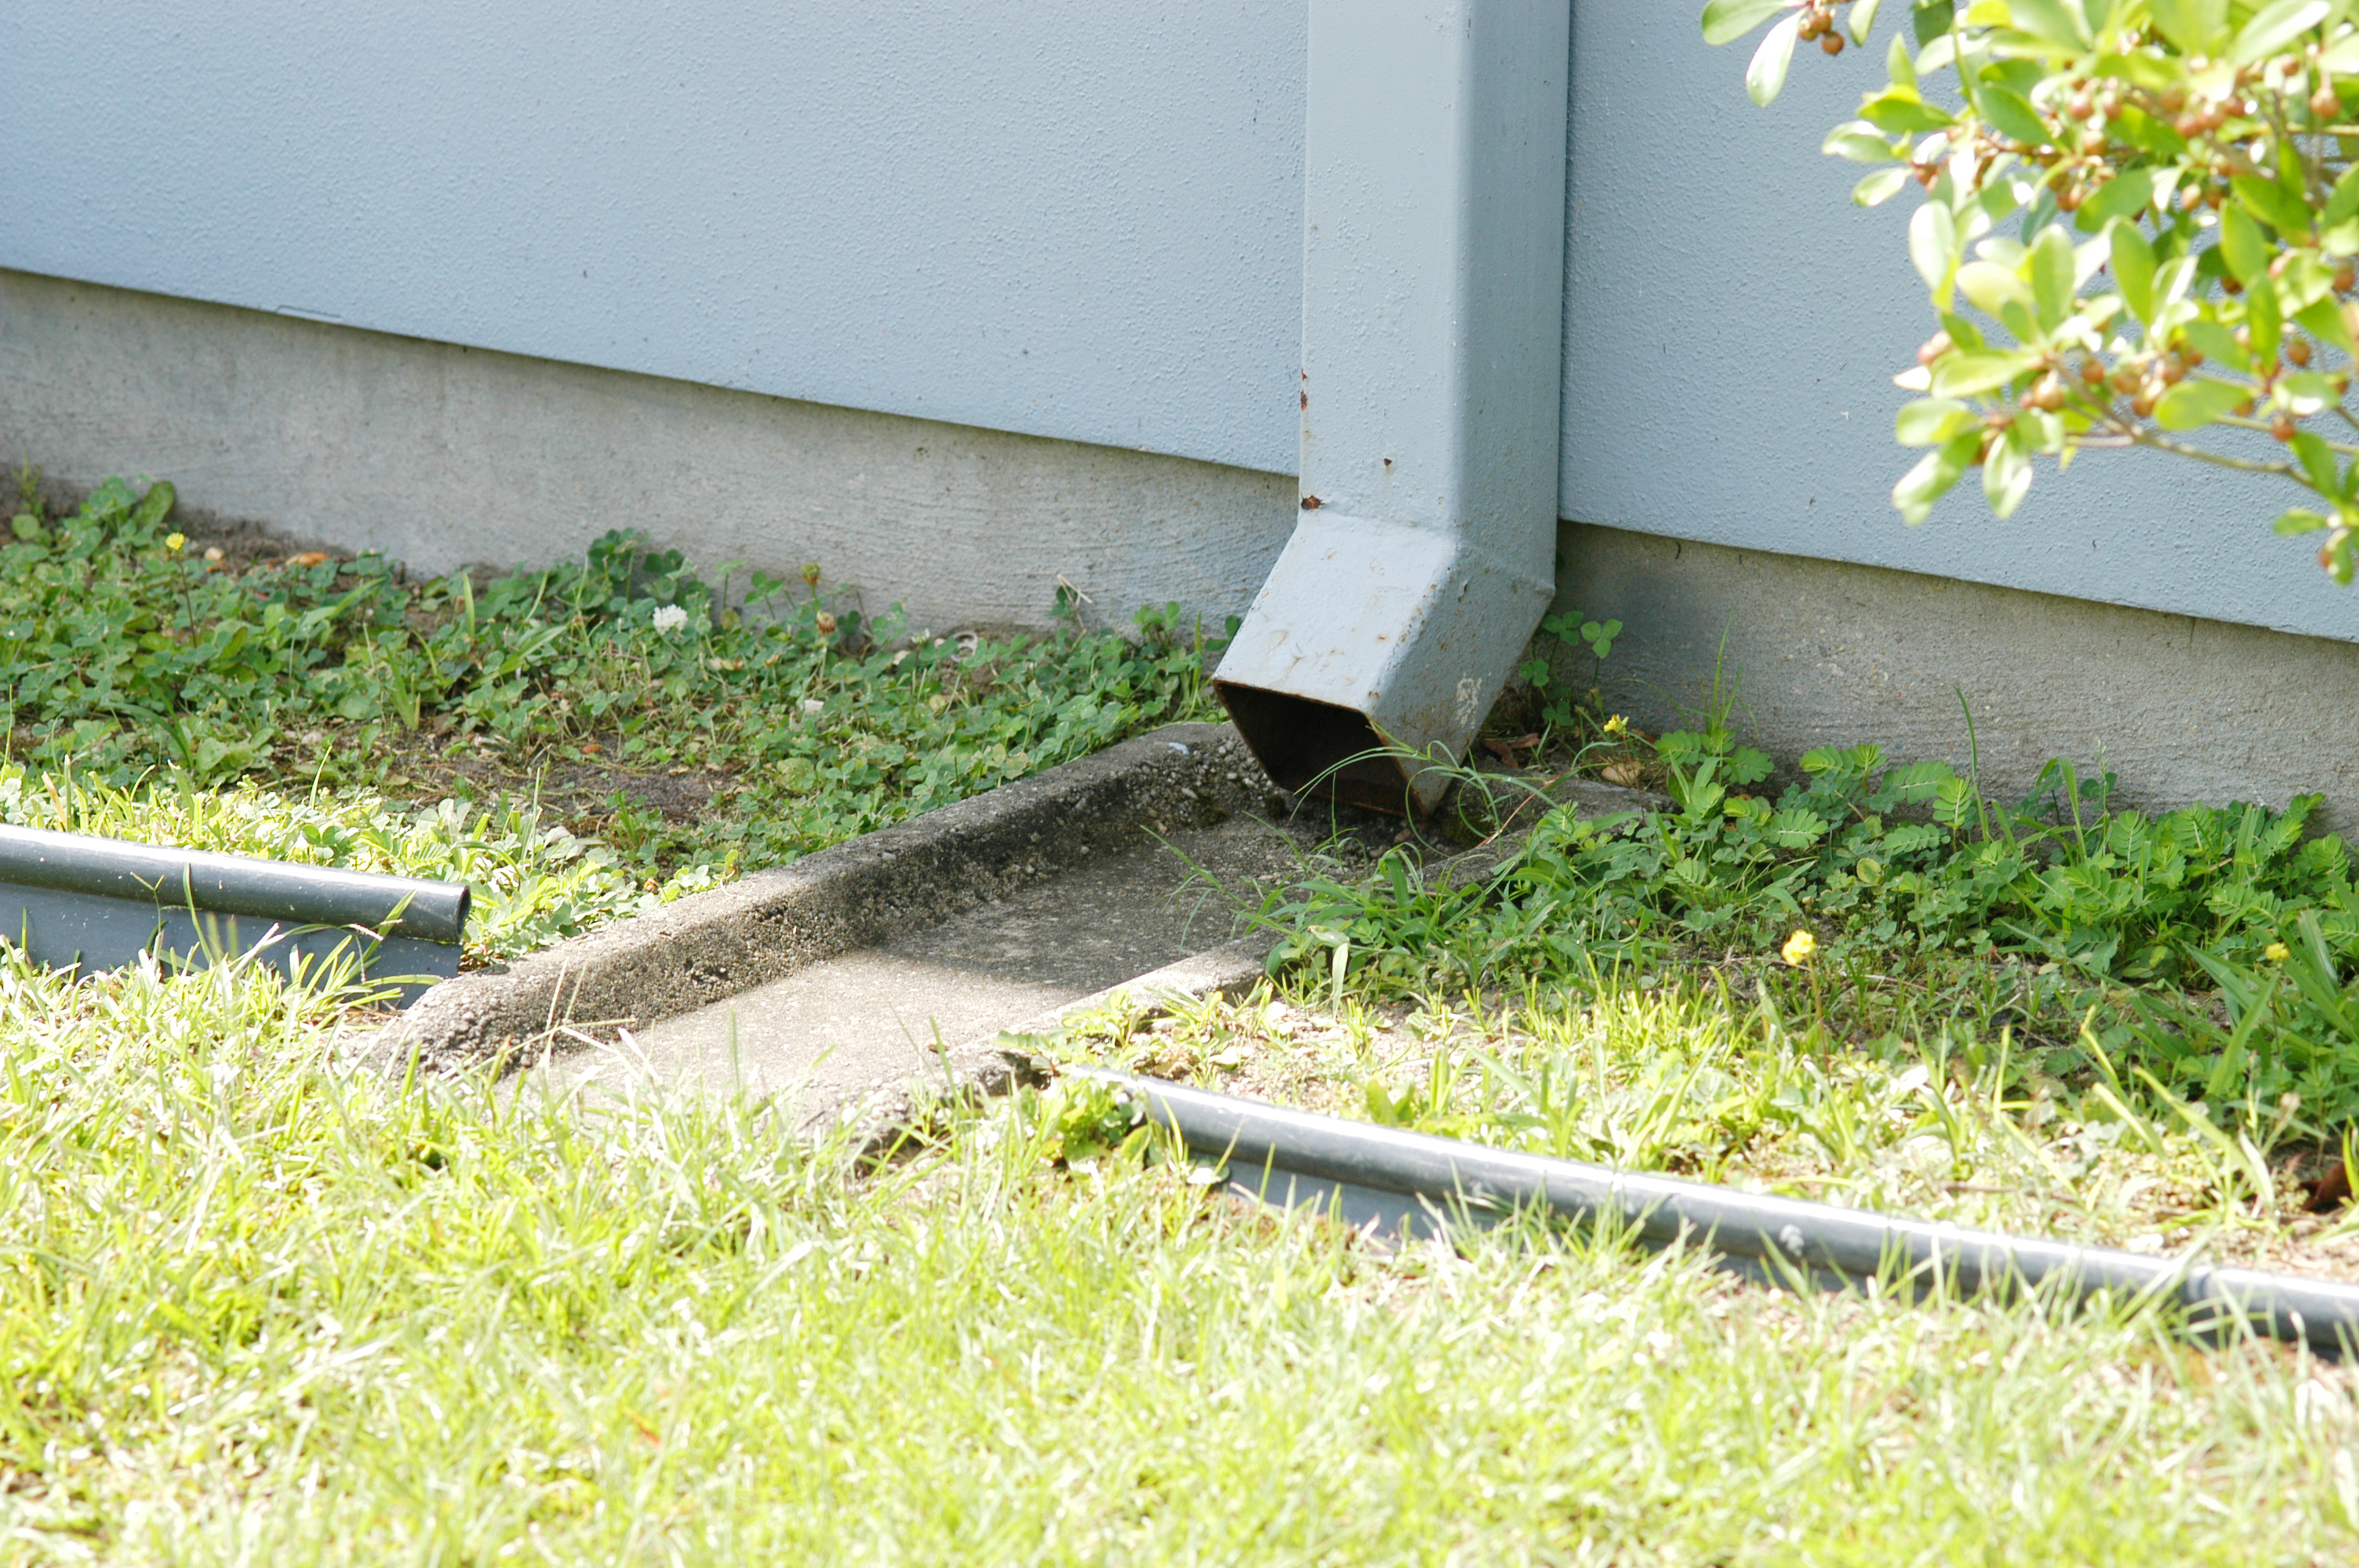 Splash blocks direct water from gutter downspouts away from building foundations and reduce potential for termite infestation by preventing soil movement and slowing the breakdown of termiticide barriers.